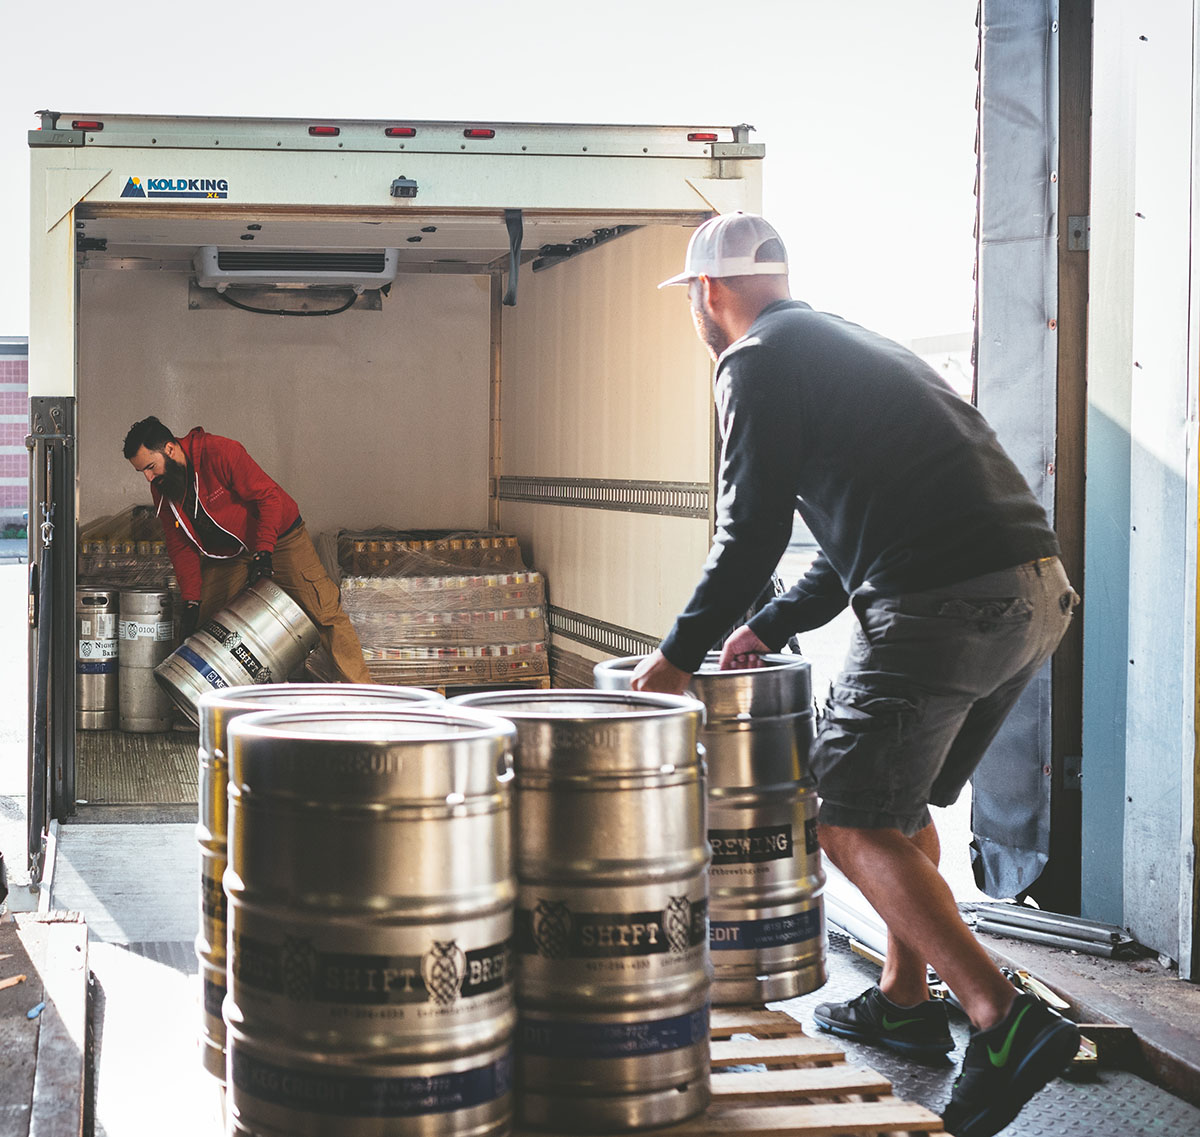 Night Shift Distributing Will Shake Up The Beer Industry